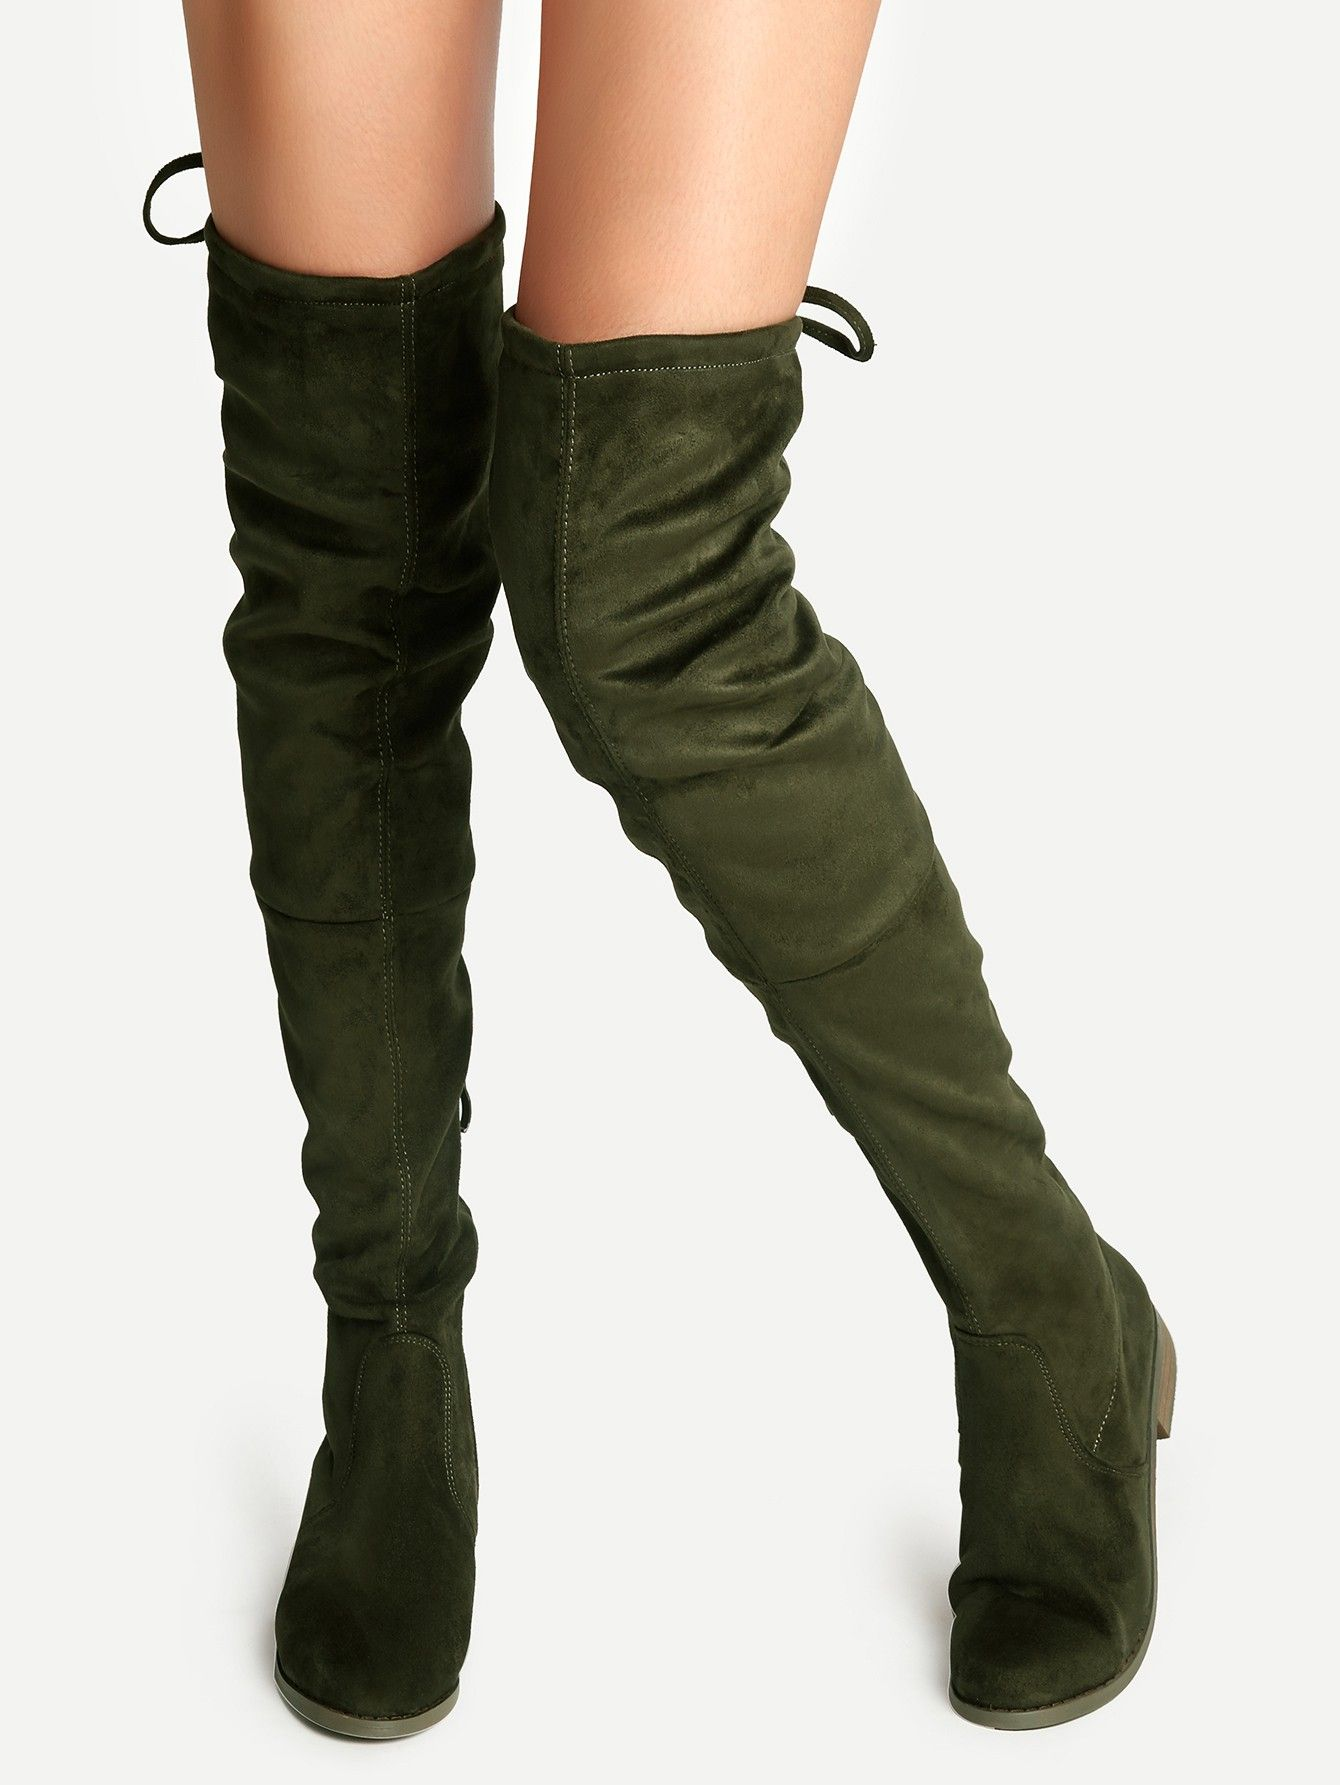 abbcbaf051e Olive Green Faux Suede Lace Up Over The Knee Boots